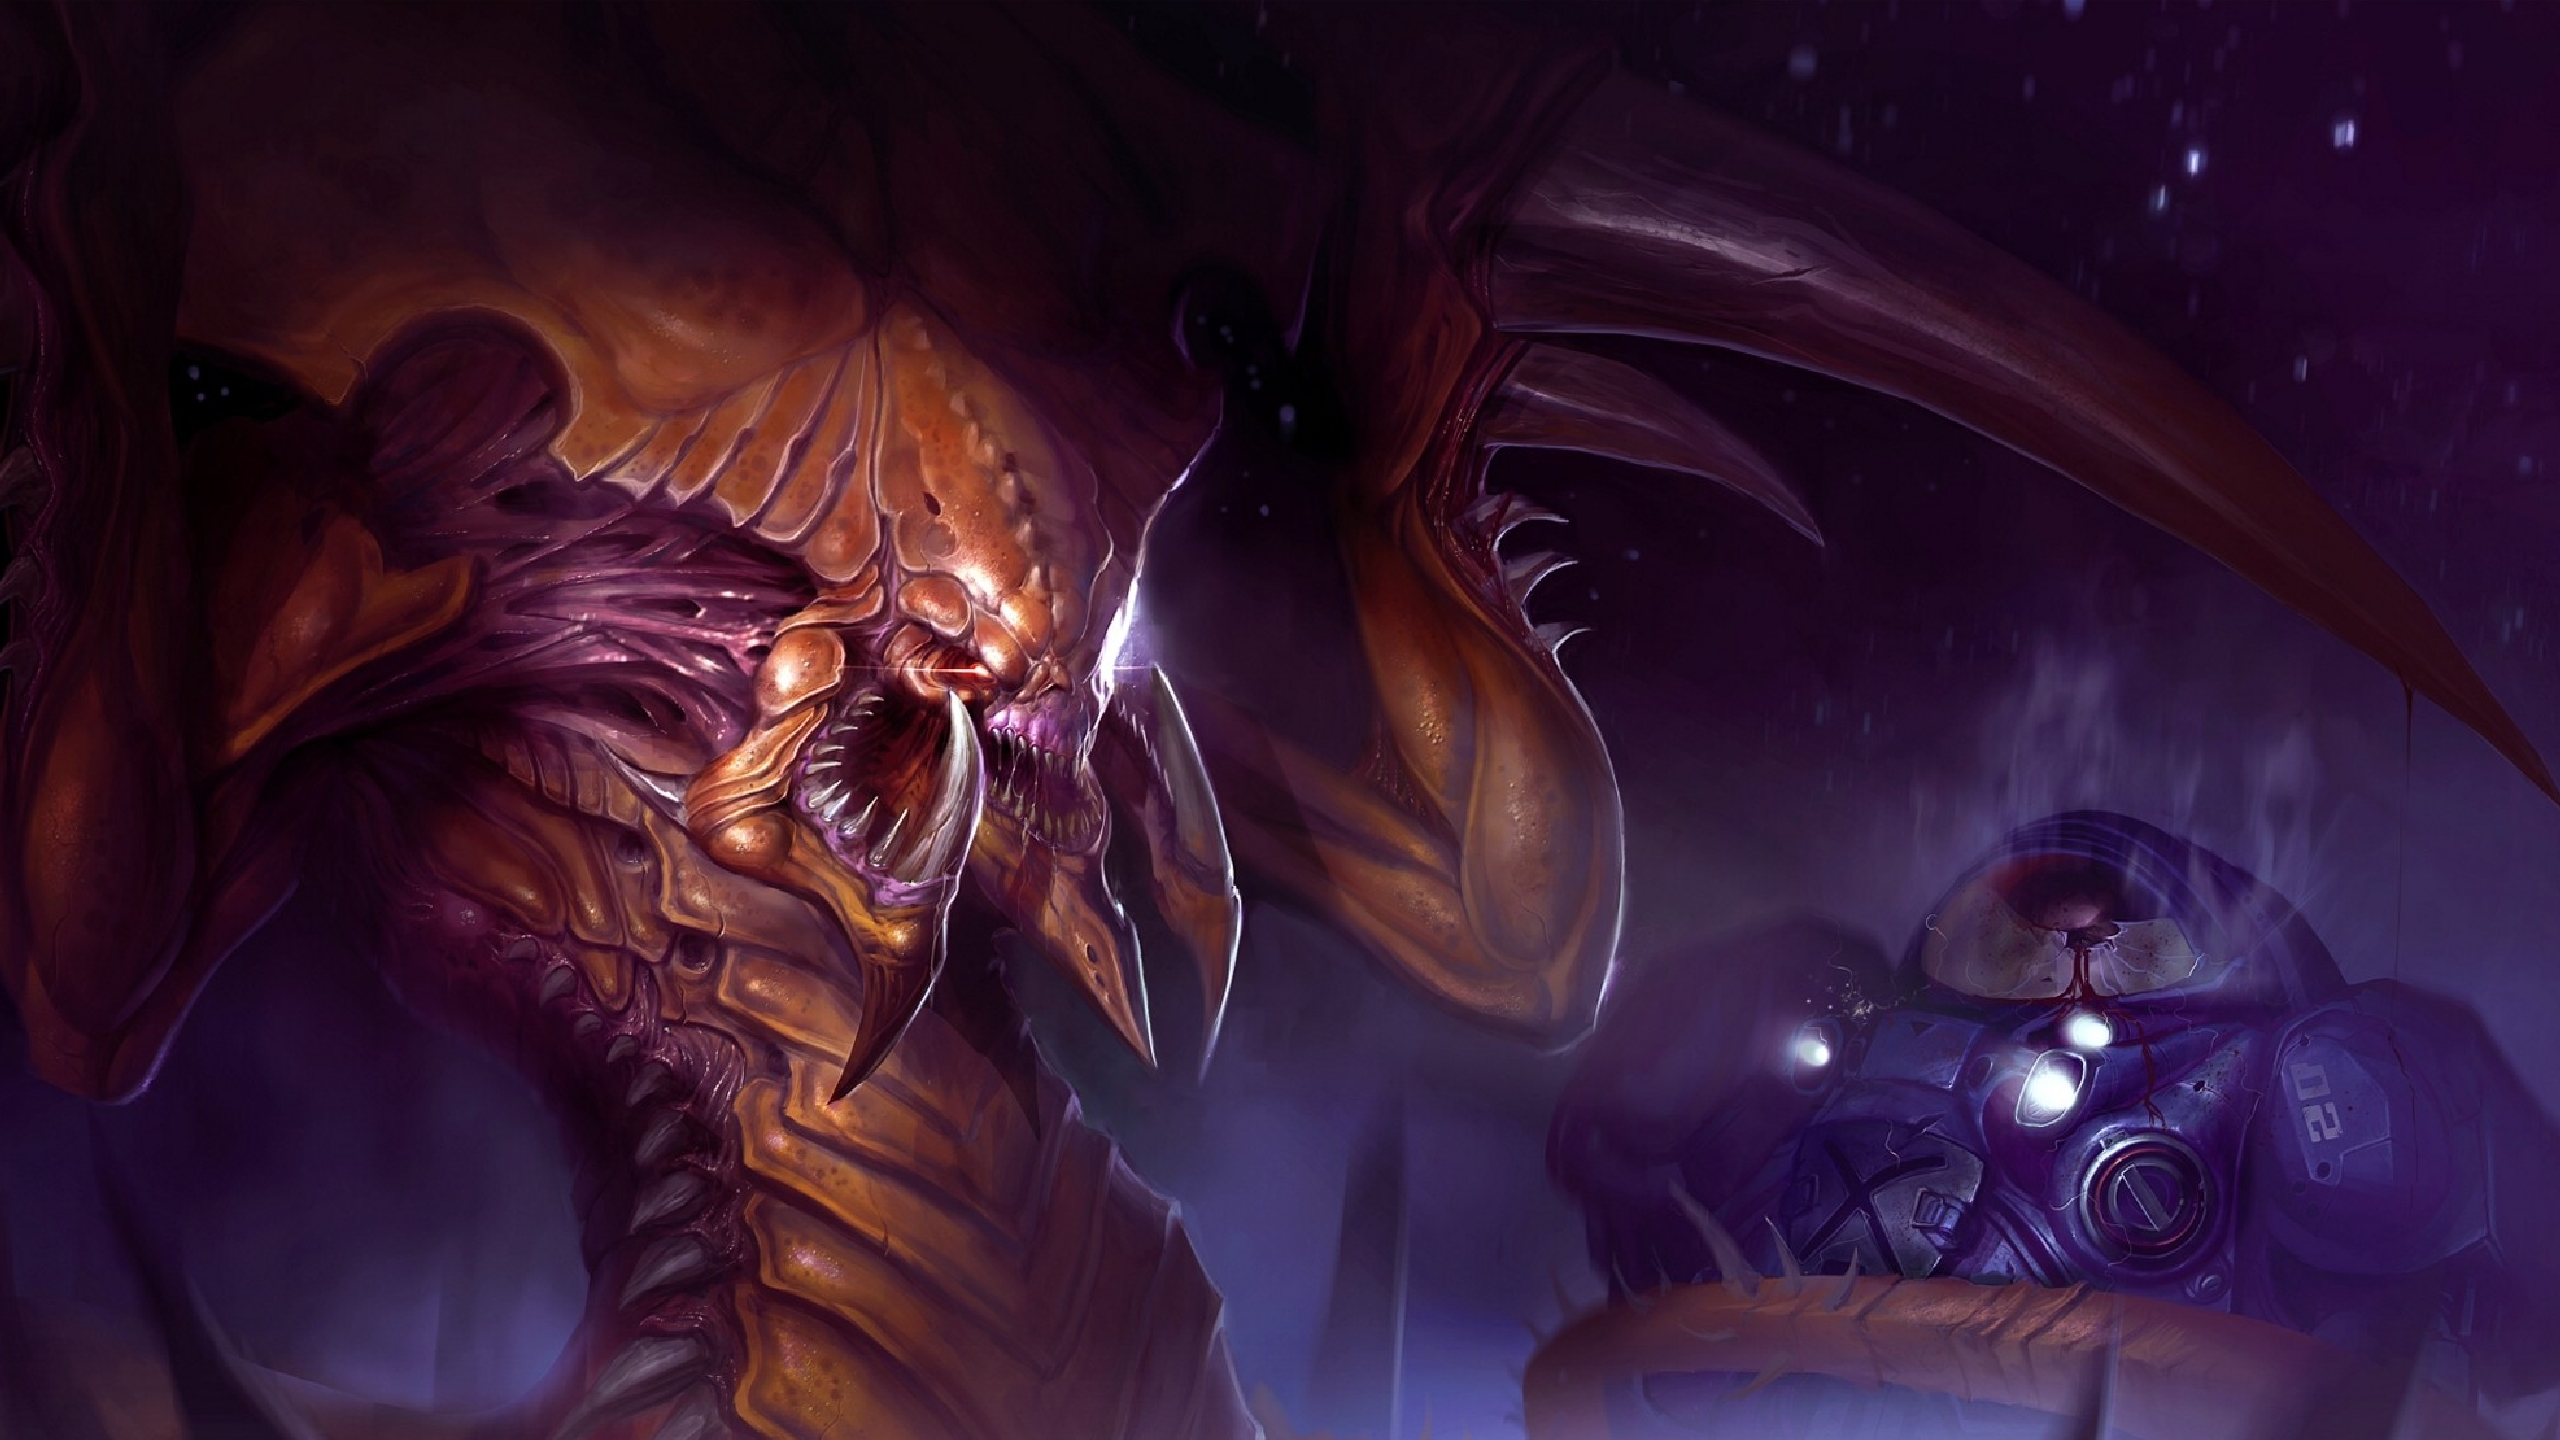 zerg starcraft wallpaper 2560x1440 - photo #17